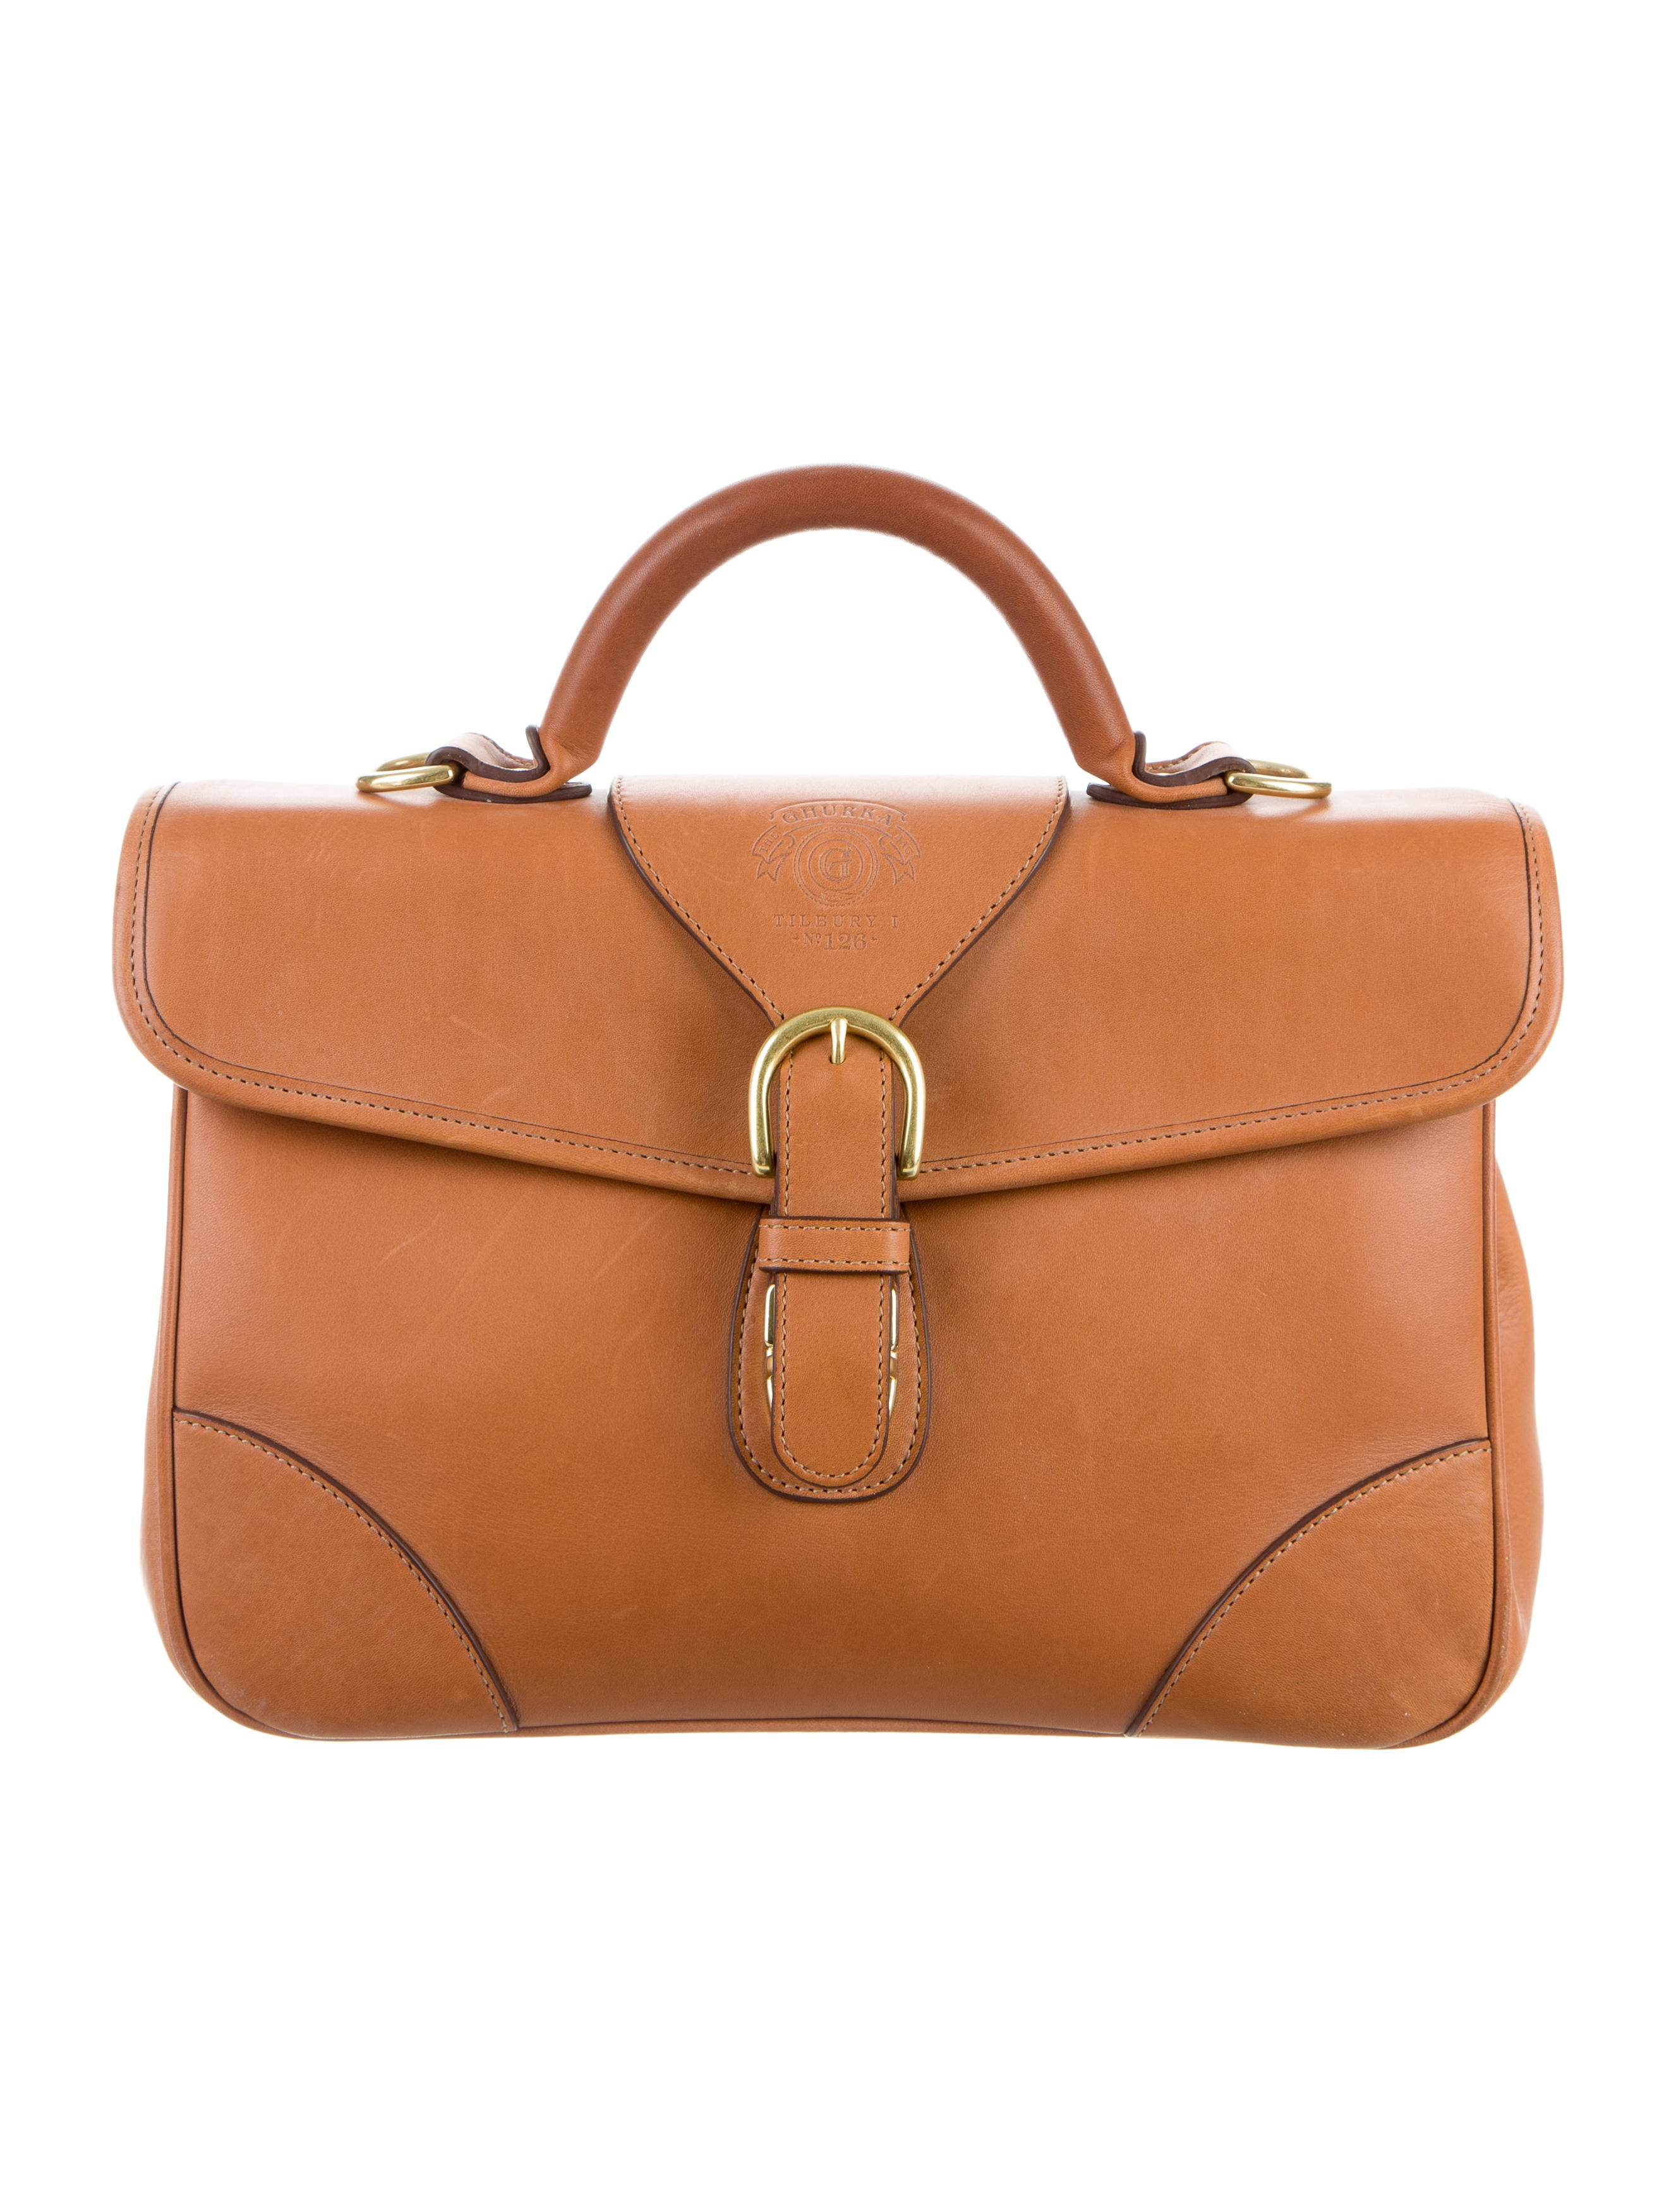 Ghurka Leather Satchel Handbags GHK20069 The RealReal : GHK200691enlarged from www.therealreal.com size 2653 x 3501 jpeg 560kB